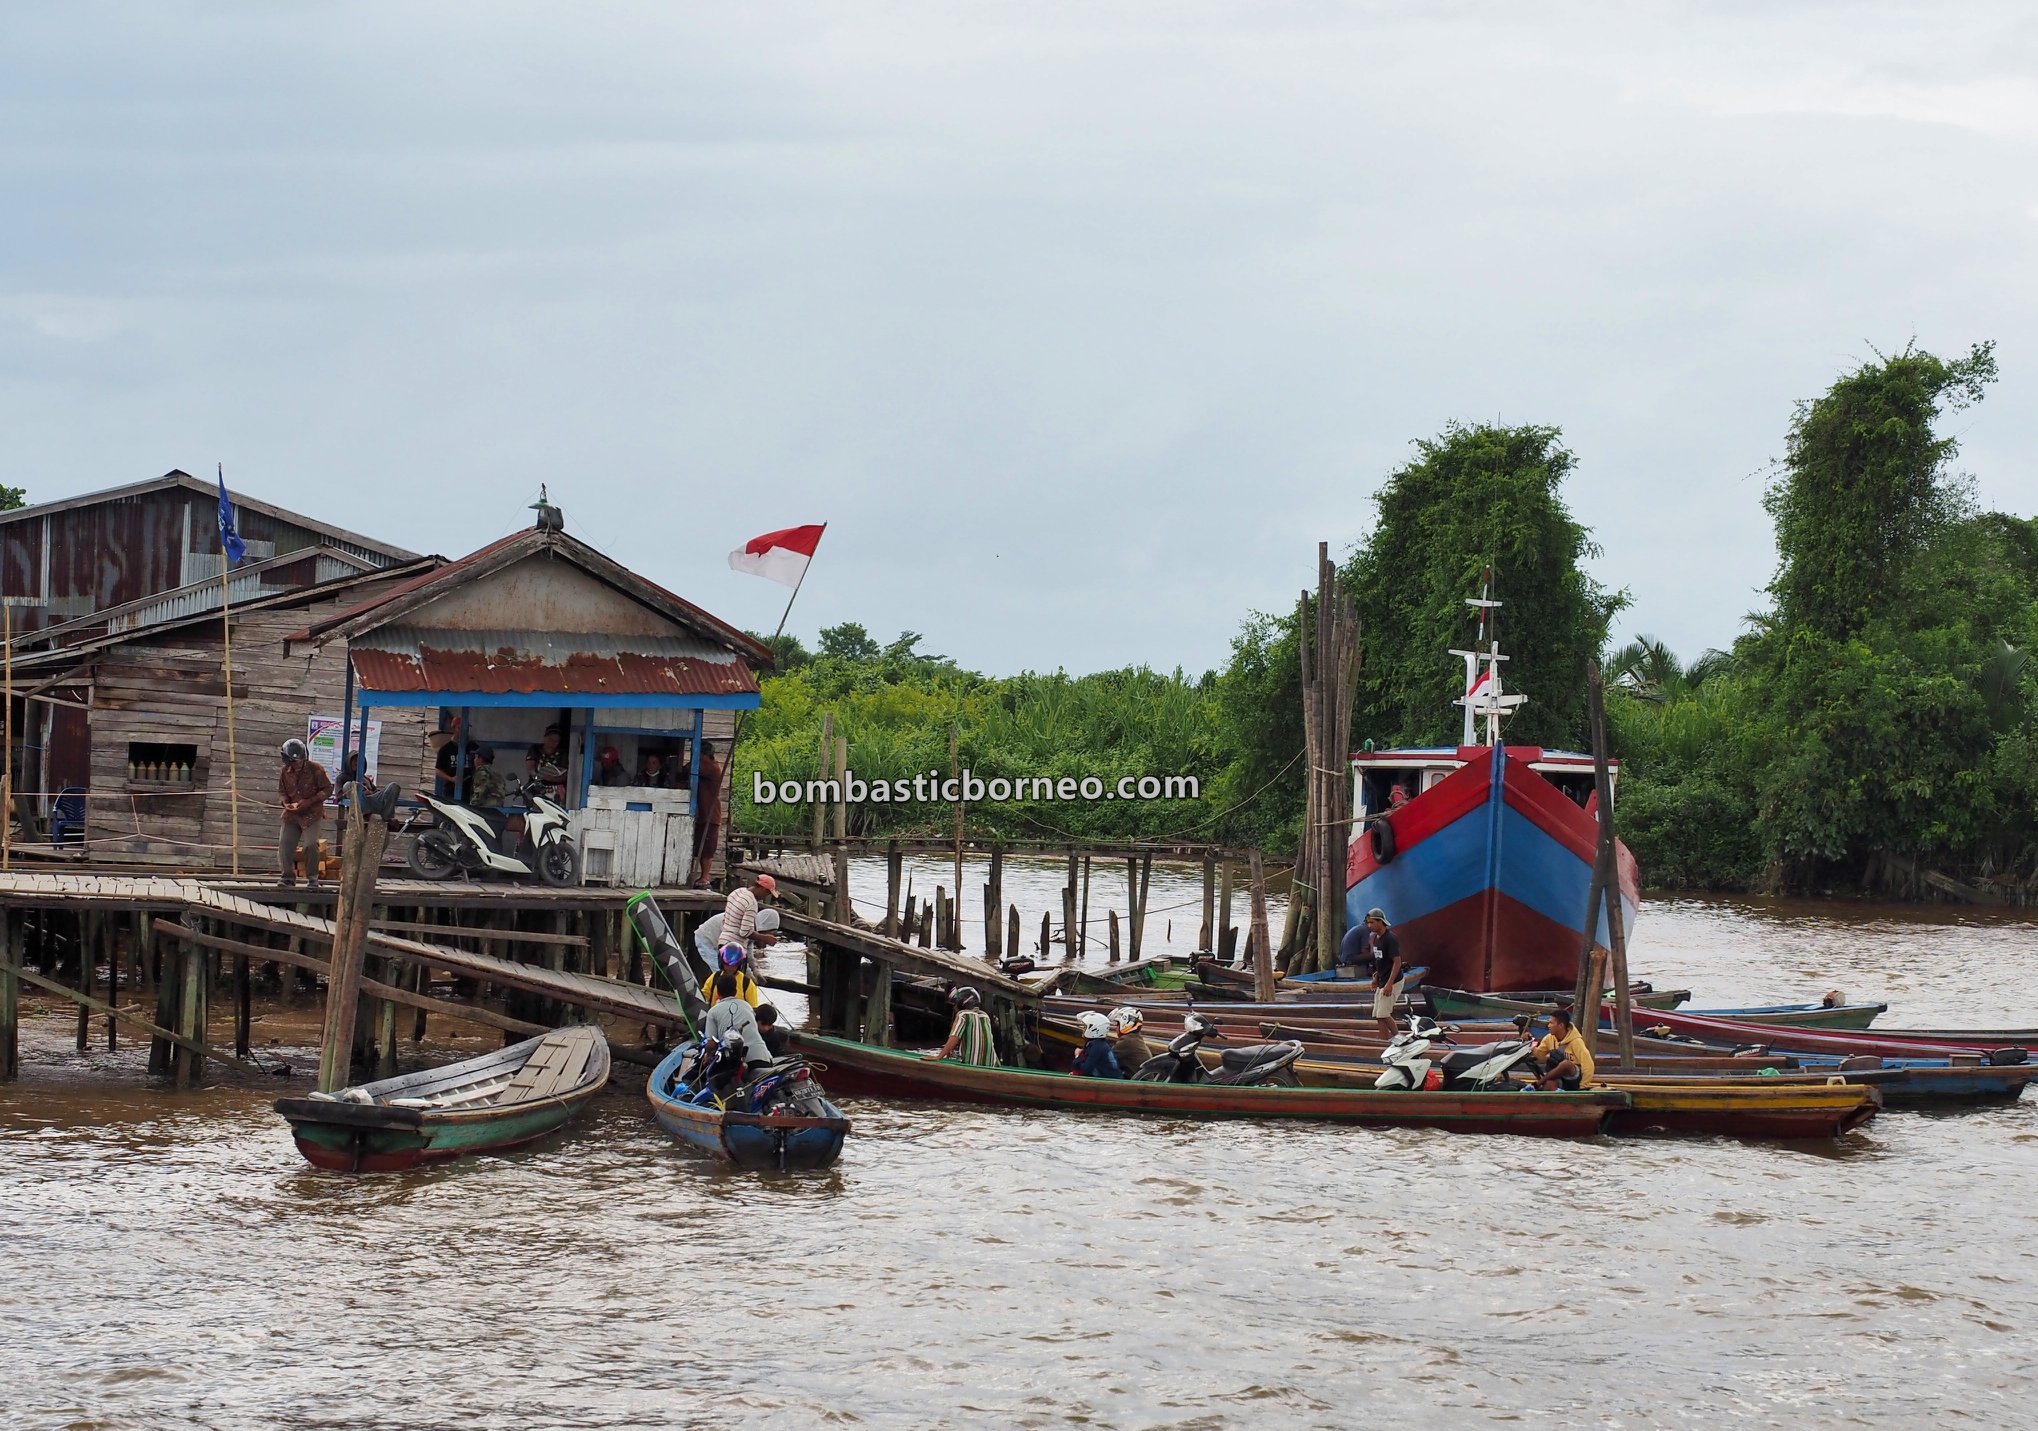 adventure, traditional, Perigi Piai Tekarang Ferry port, Malay fishing village, Kampung Nelayan Melayu, Indonesia, West Kalimantan, Tourism, travel guide, backpackers, Borneo, Trans Border, 跨境婆罗洲游踪, 印尼西加里曼丹, 三发马来渔村